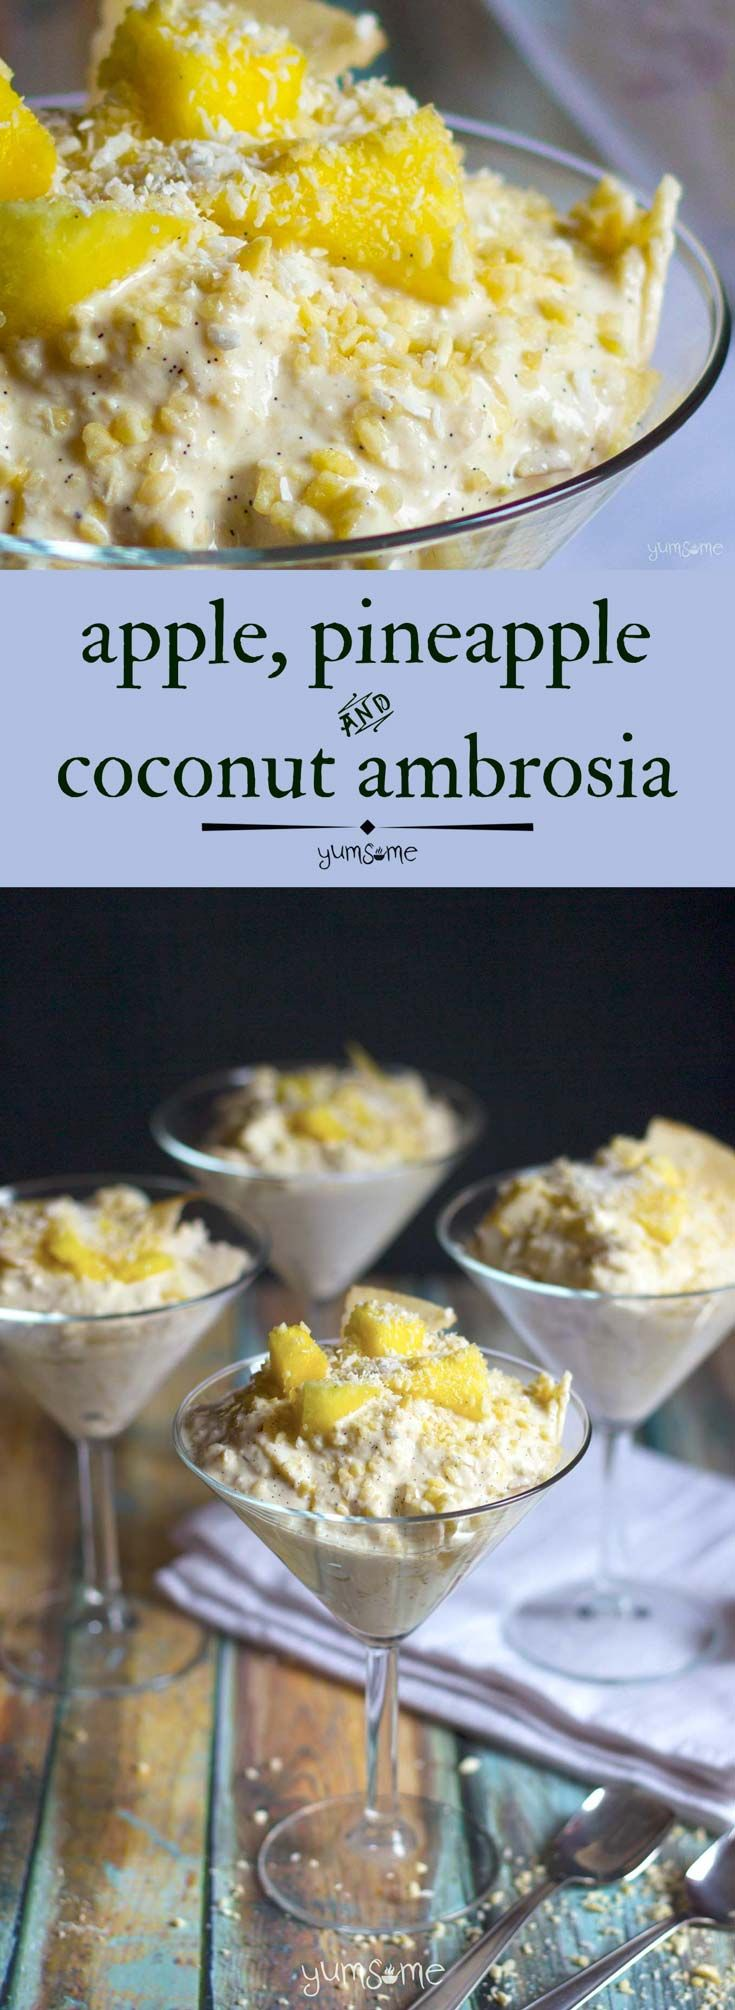 Easy Apple, Pineapple, and Coconut Ambrosia is a deliciously creamy dessert that's great for breakfast too! | yumsome.com via @yums0me